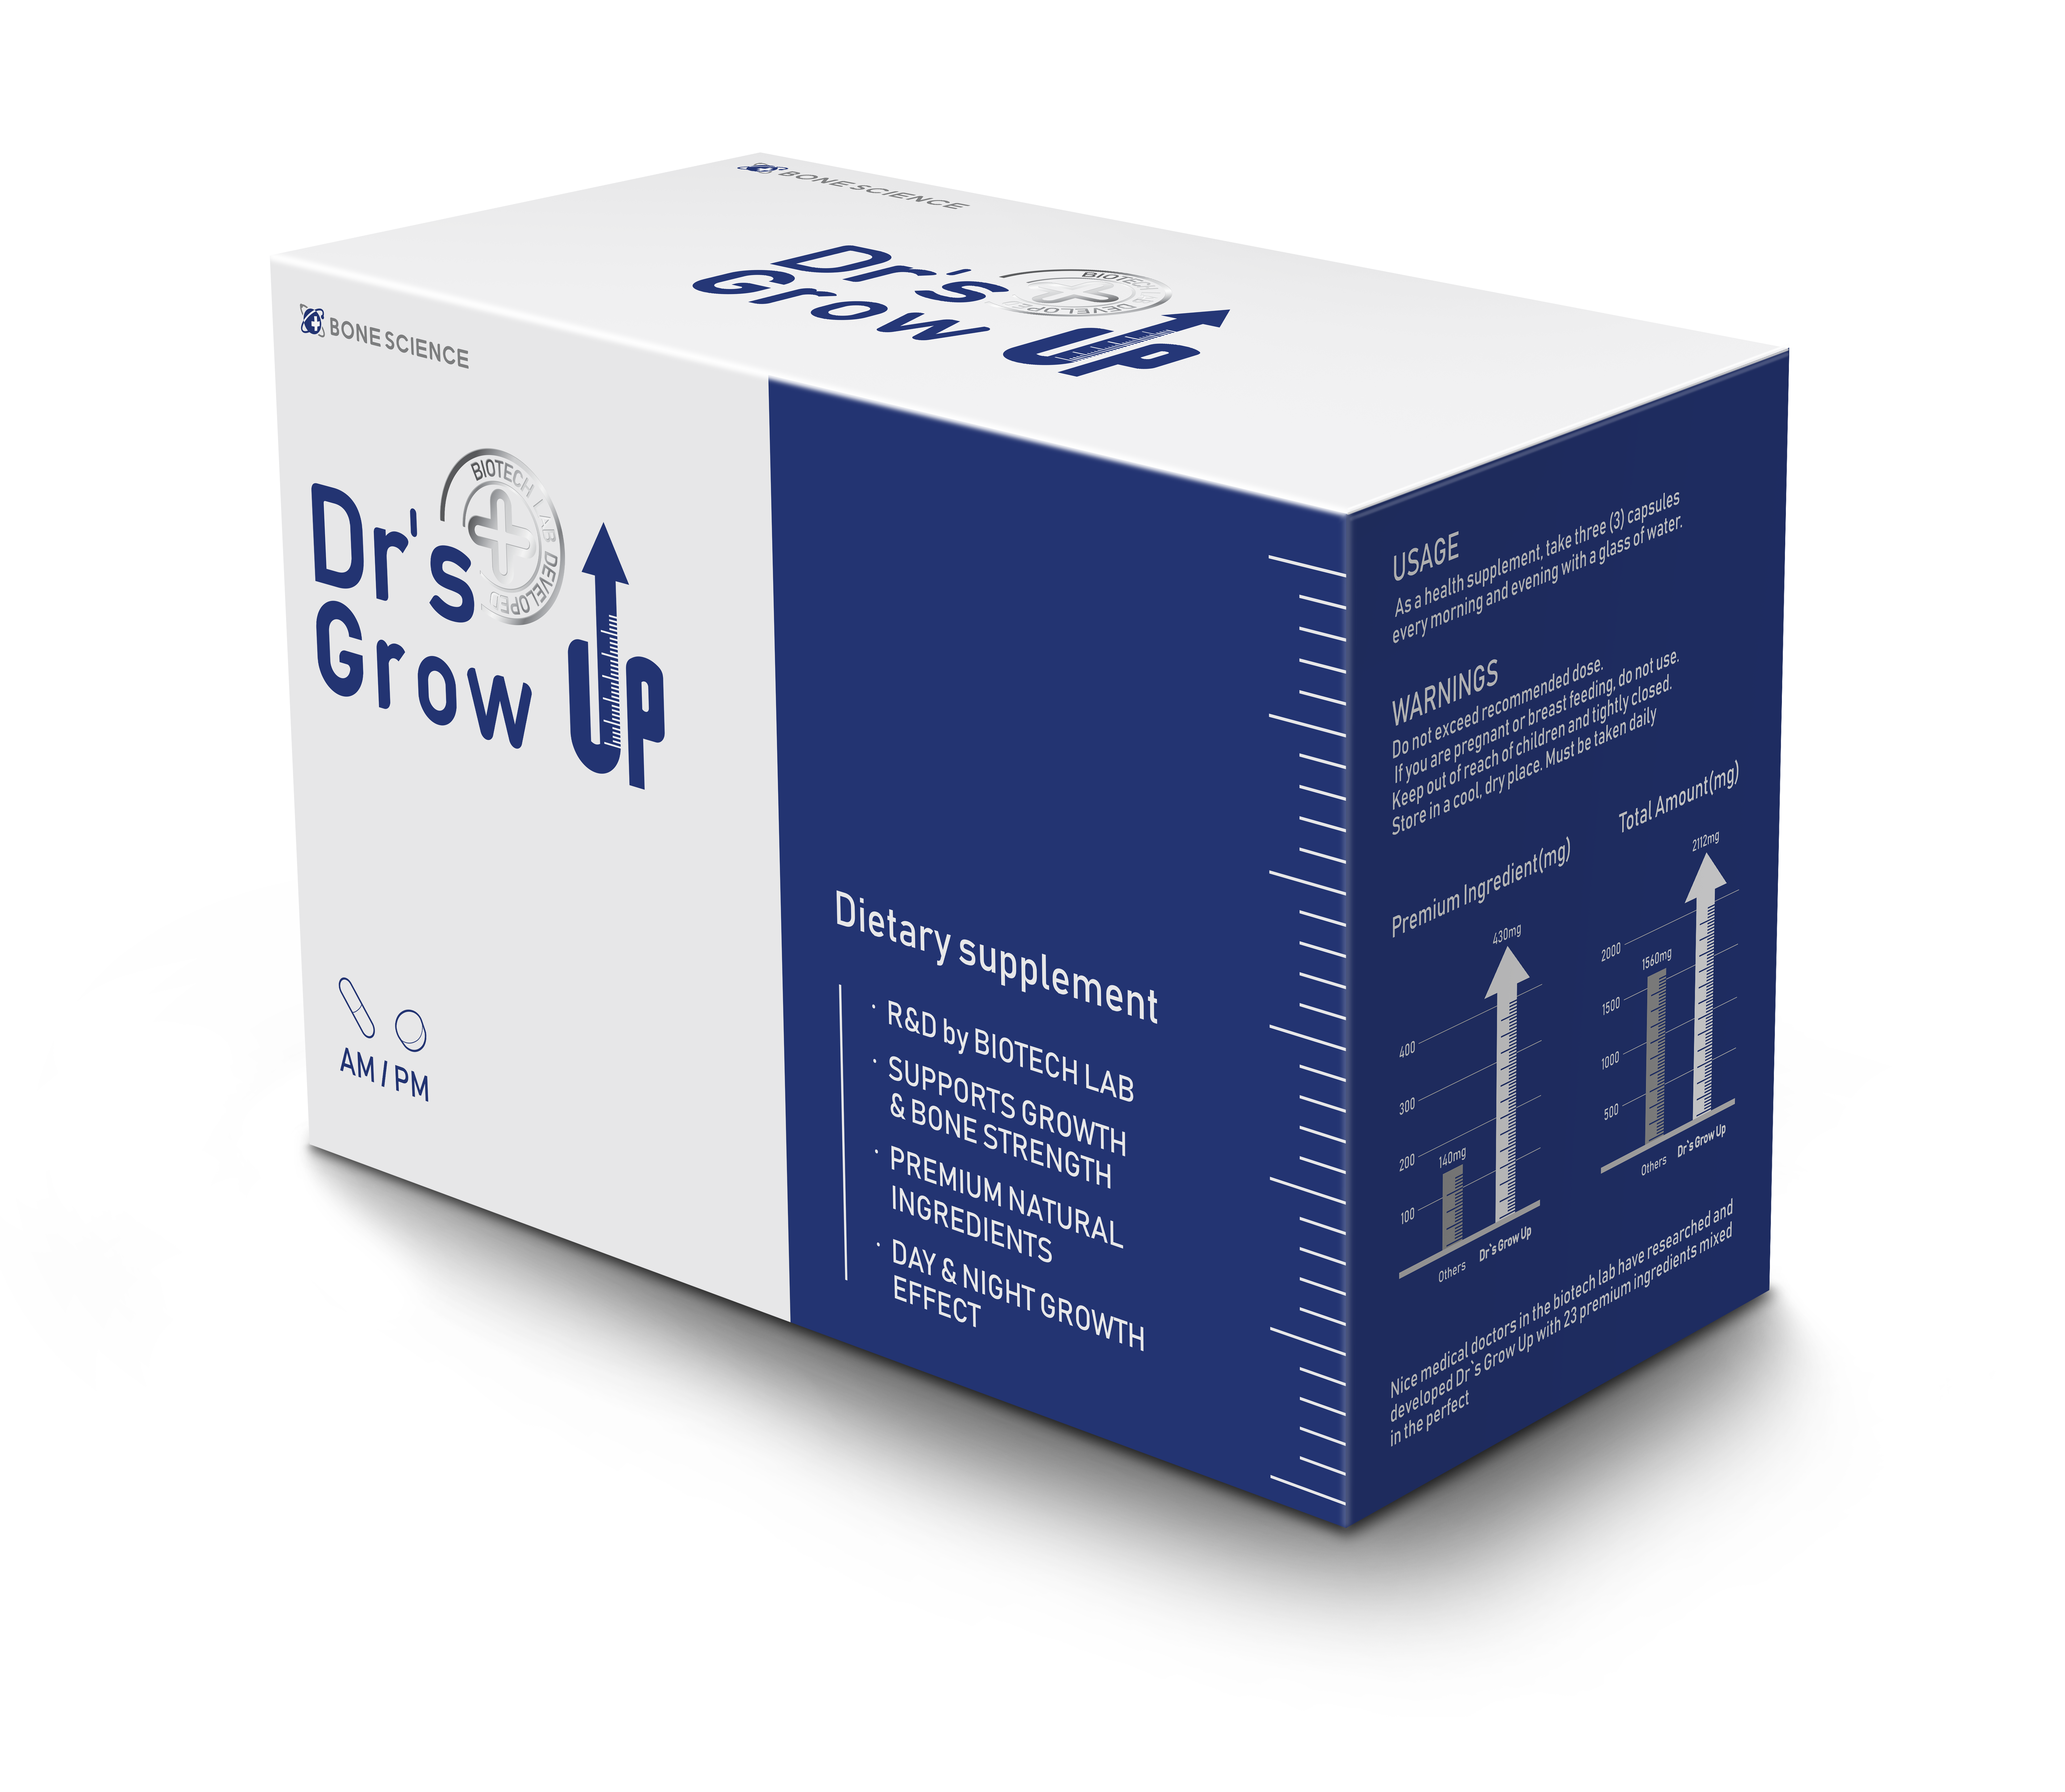 'Bone Science' will soon launch its newly developed product 'Dr's Grow UP'